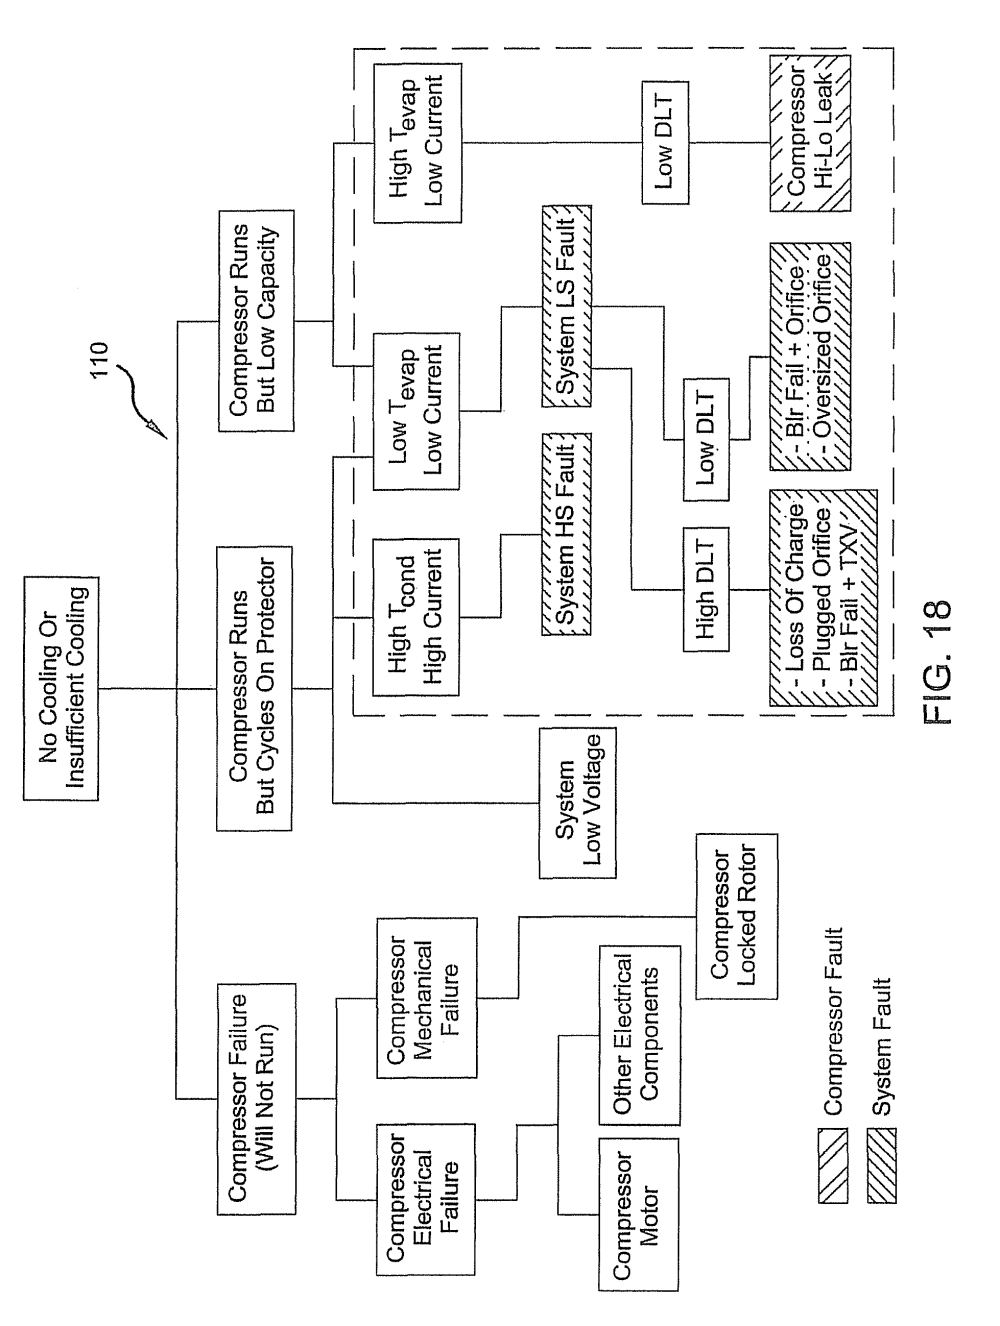 medium resolution of patent us 9 121 407 b2air compressor wiring diagram schematic sharp energy saver 20